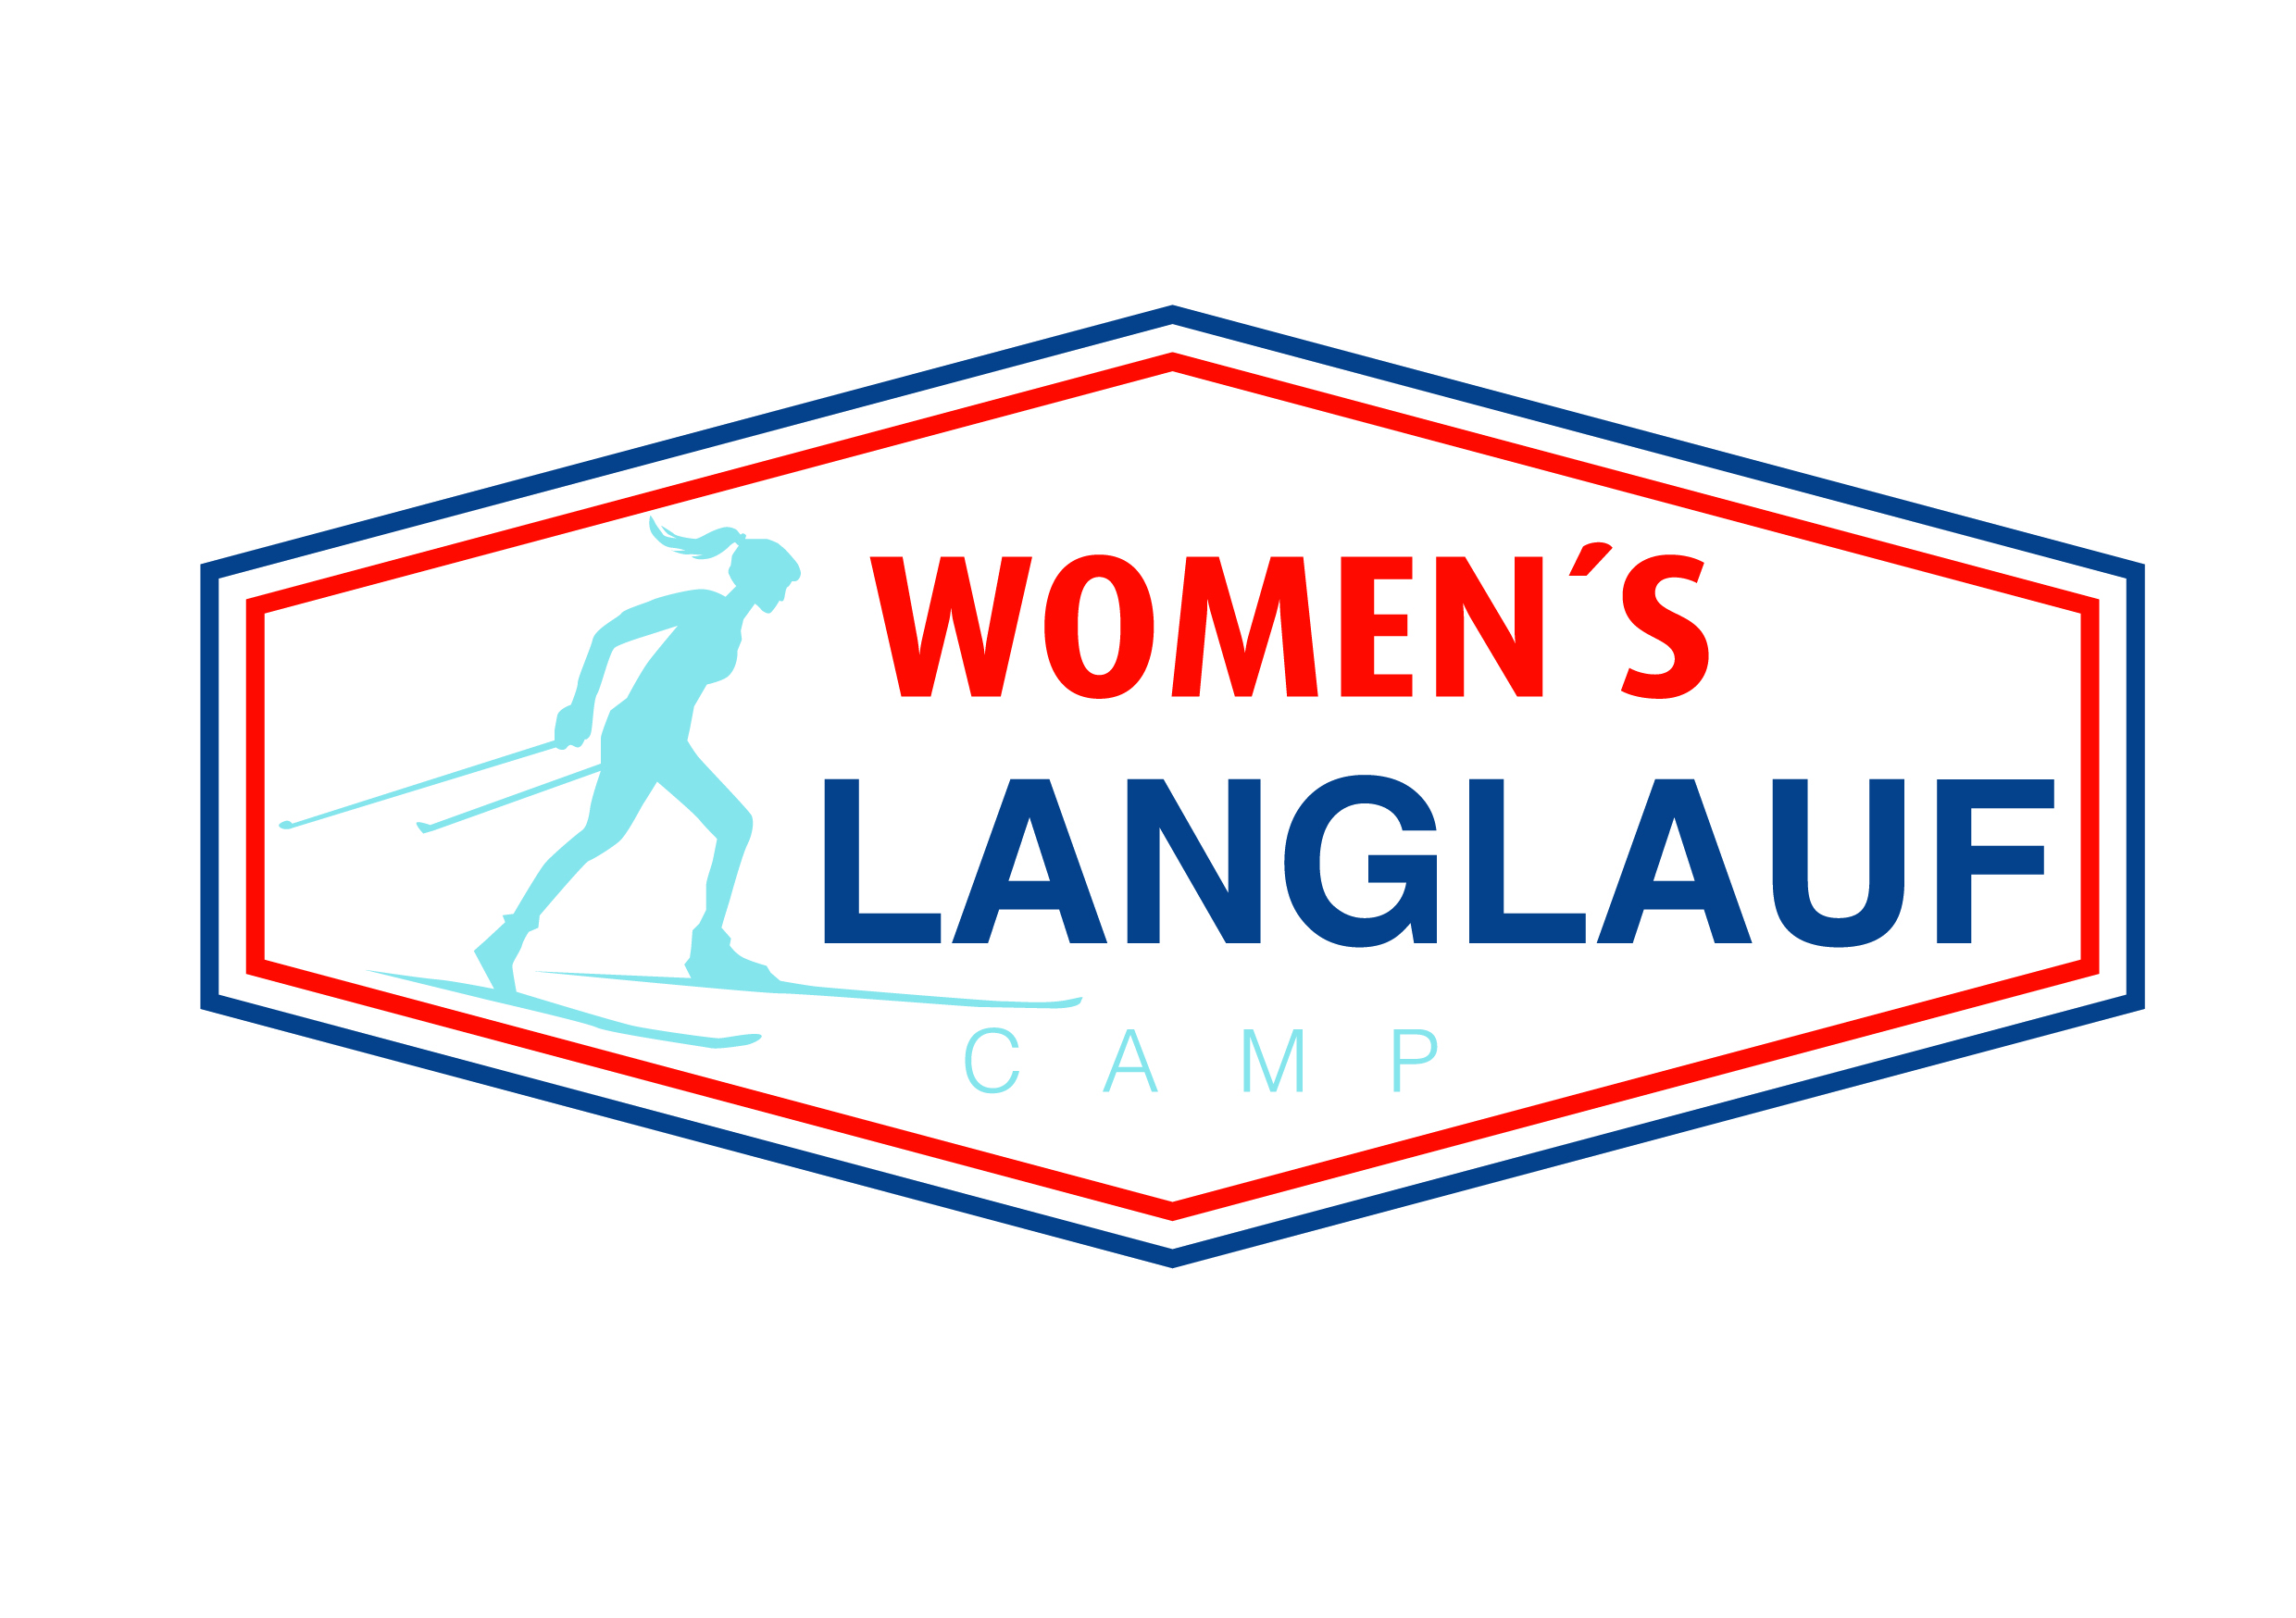 Women's Langlauf Camp